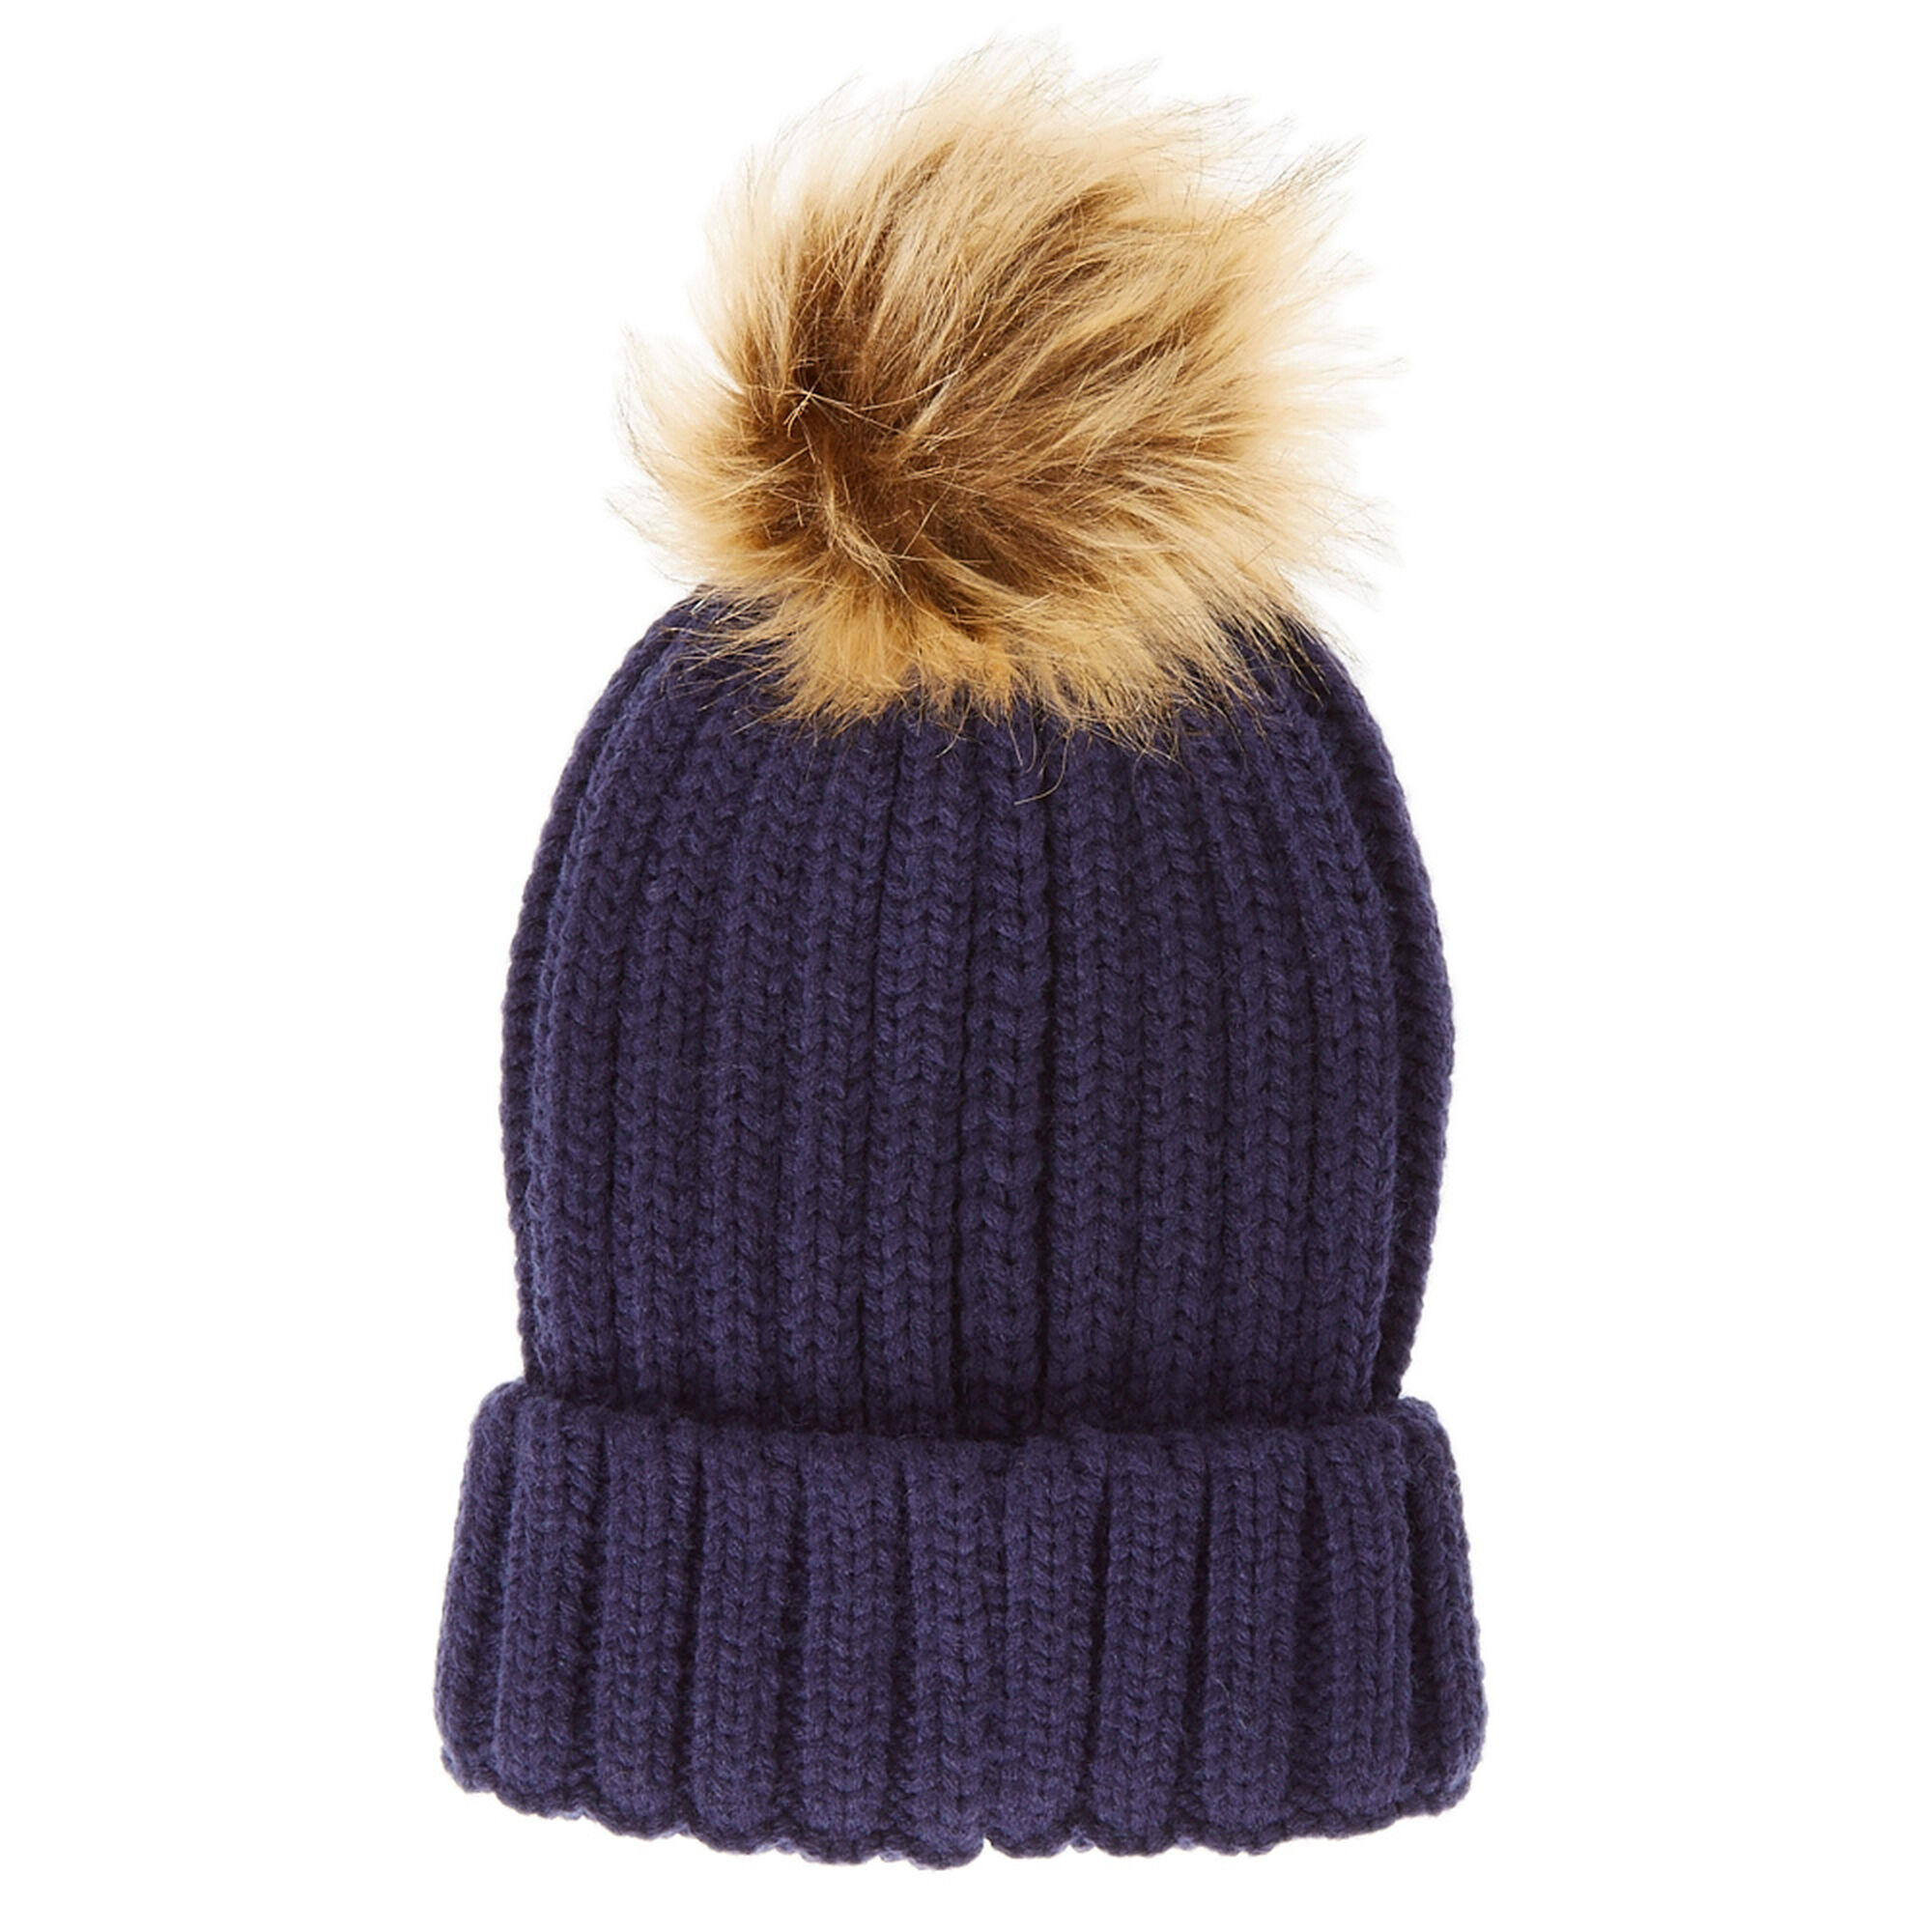 Navy Beanie Hat with Tan Pom Pom  94a1eae3809